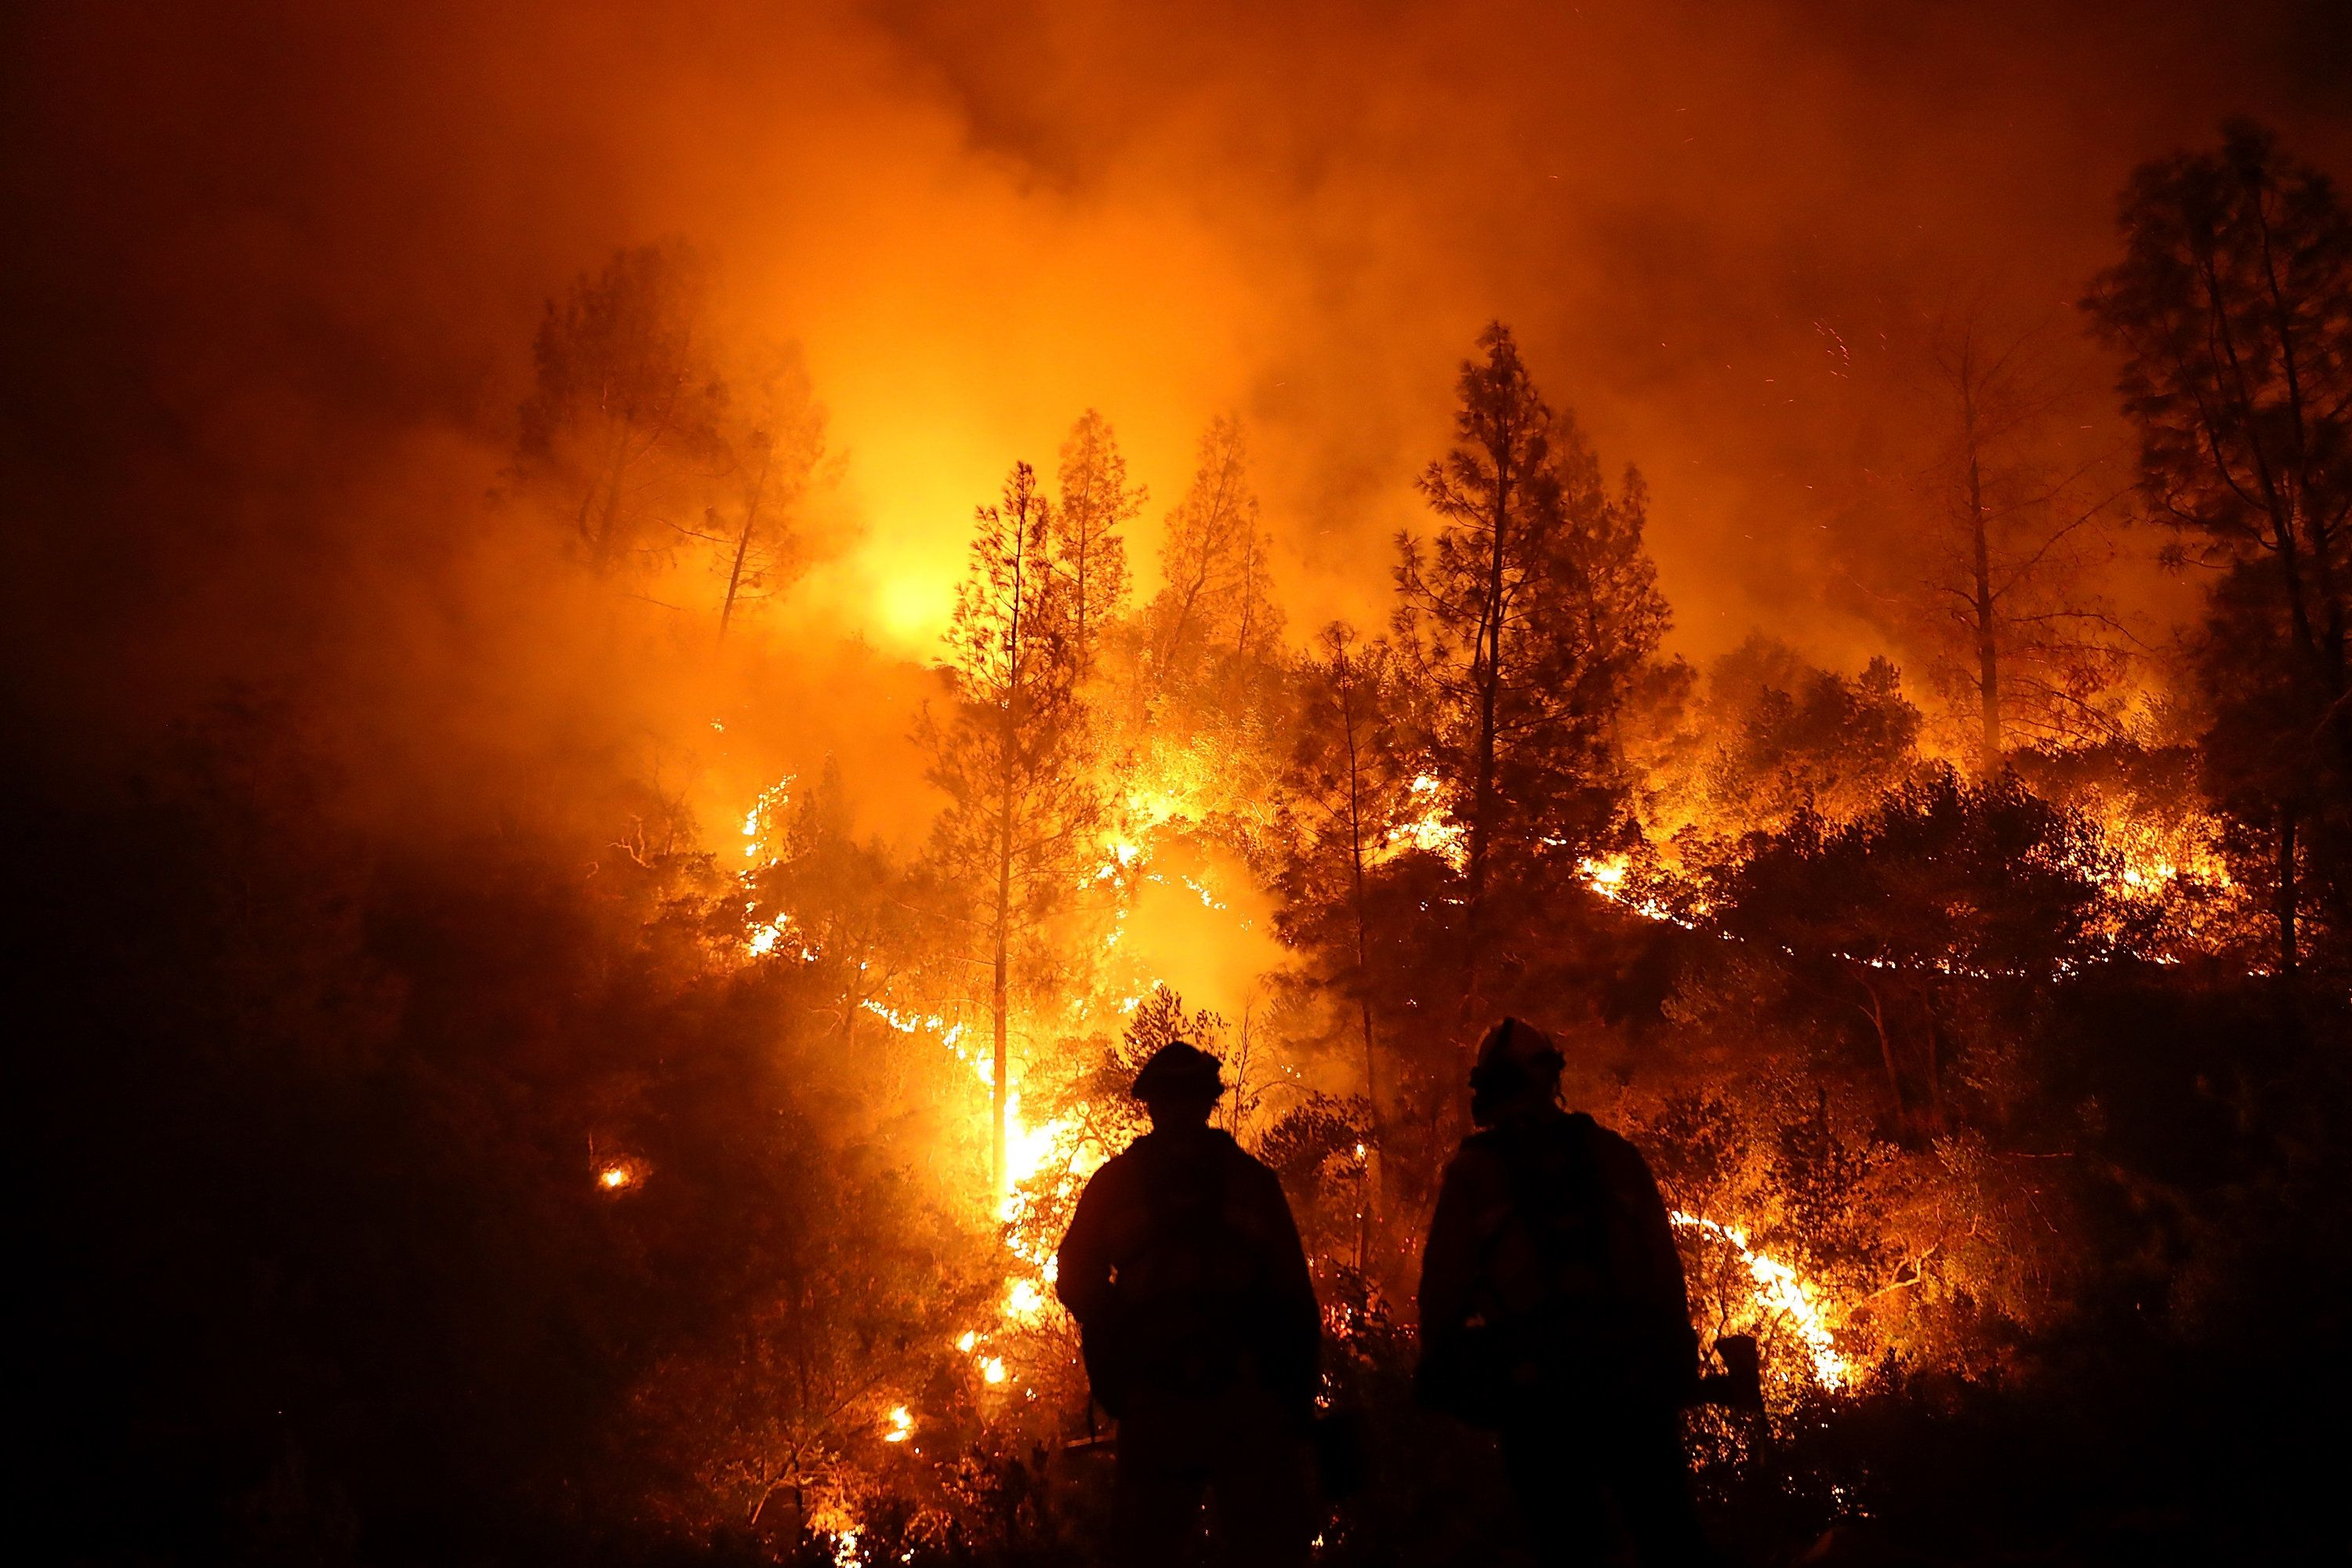 LODOGA, CA - AUGUST 07:  Firefighters monitor a back fire as they battle the Medocino Complex fire on August 7, 2018 near Lodoga, California. The Mendocino Complex Fire, which is made up of the River Fire and Ranch Fire, has surpassed the Thomas Fire to become the largest wildfire in California state history with over 280,000 acres charred and at least 75 homes destroyed.  (Photo by Justin Sullivan/Getty Images)